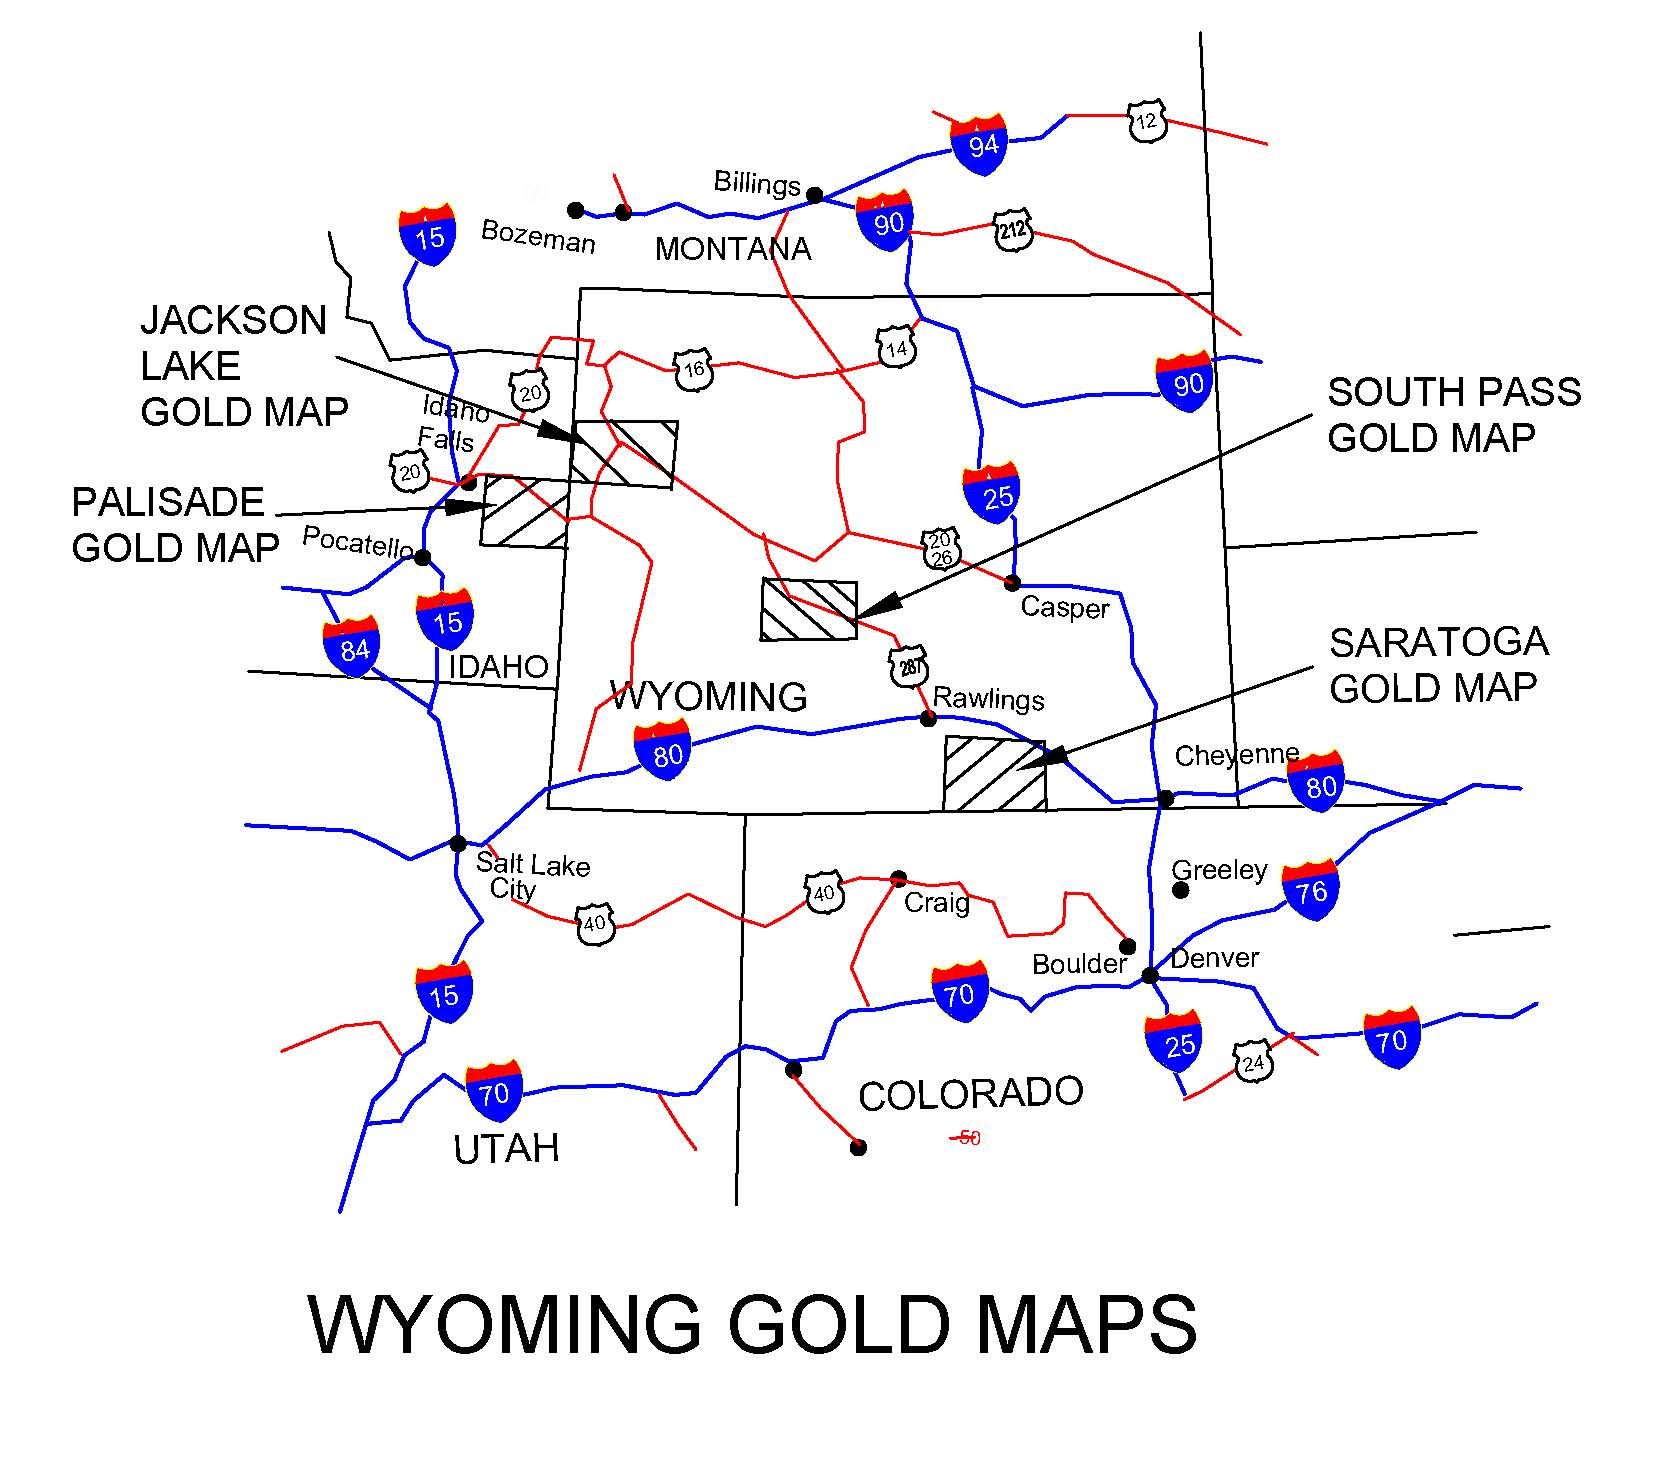 WYOMING GOLD MAPS, GOLD PLACERS AND GOLD PANNING IN WYOMING, GOLD ...